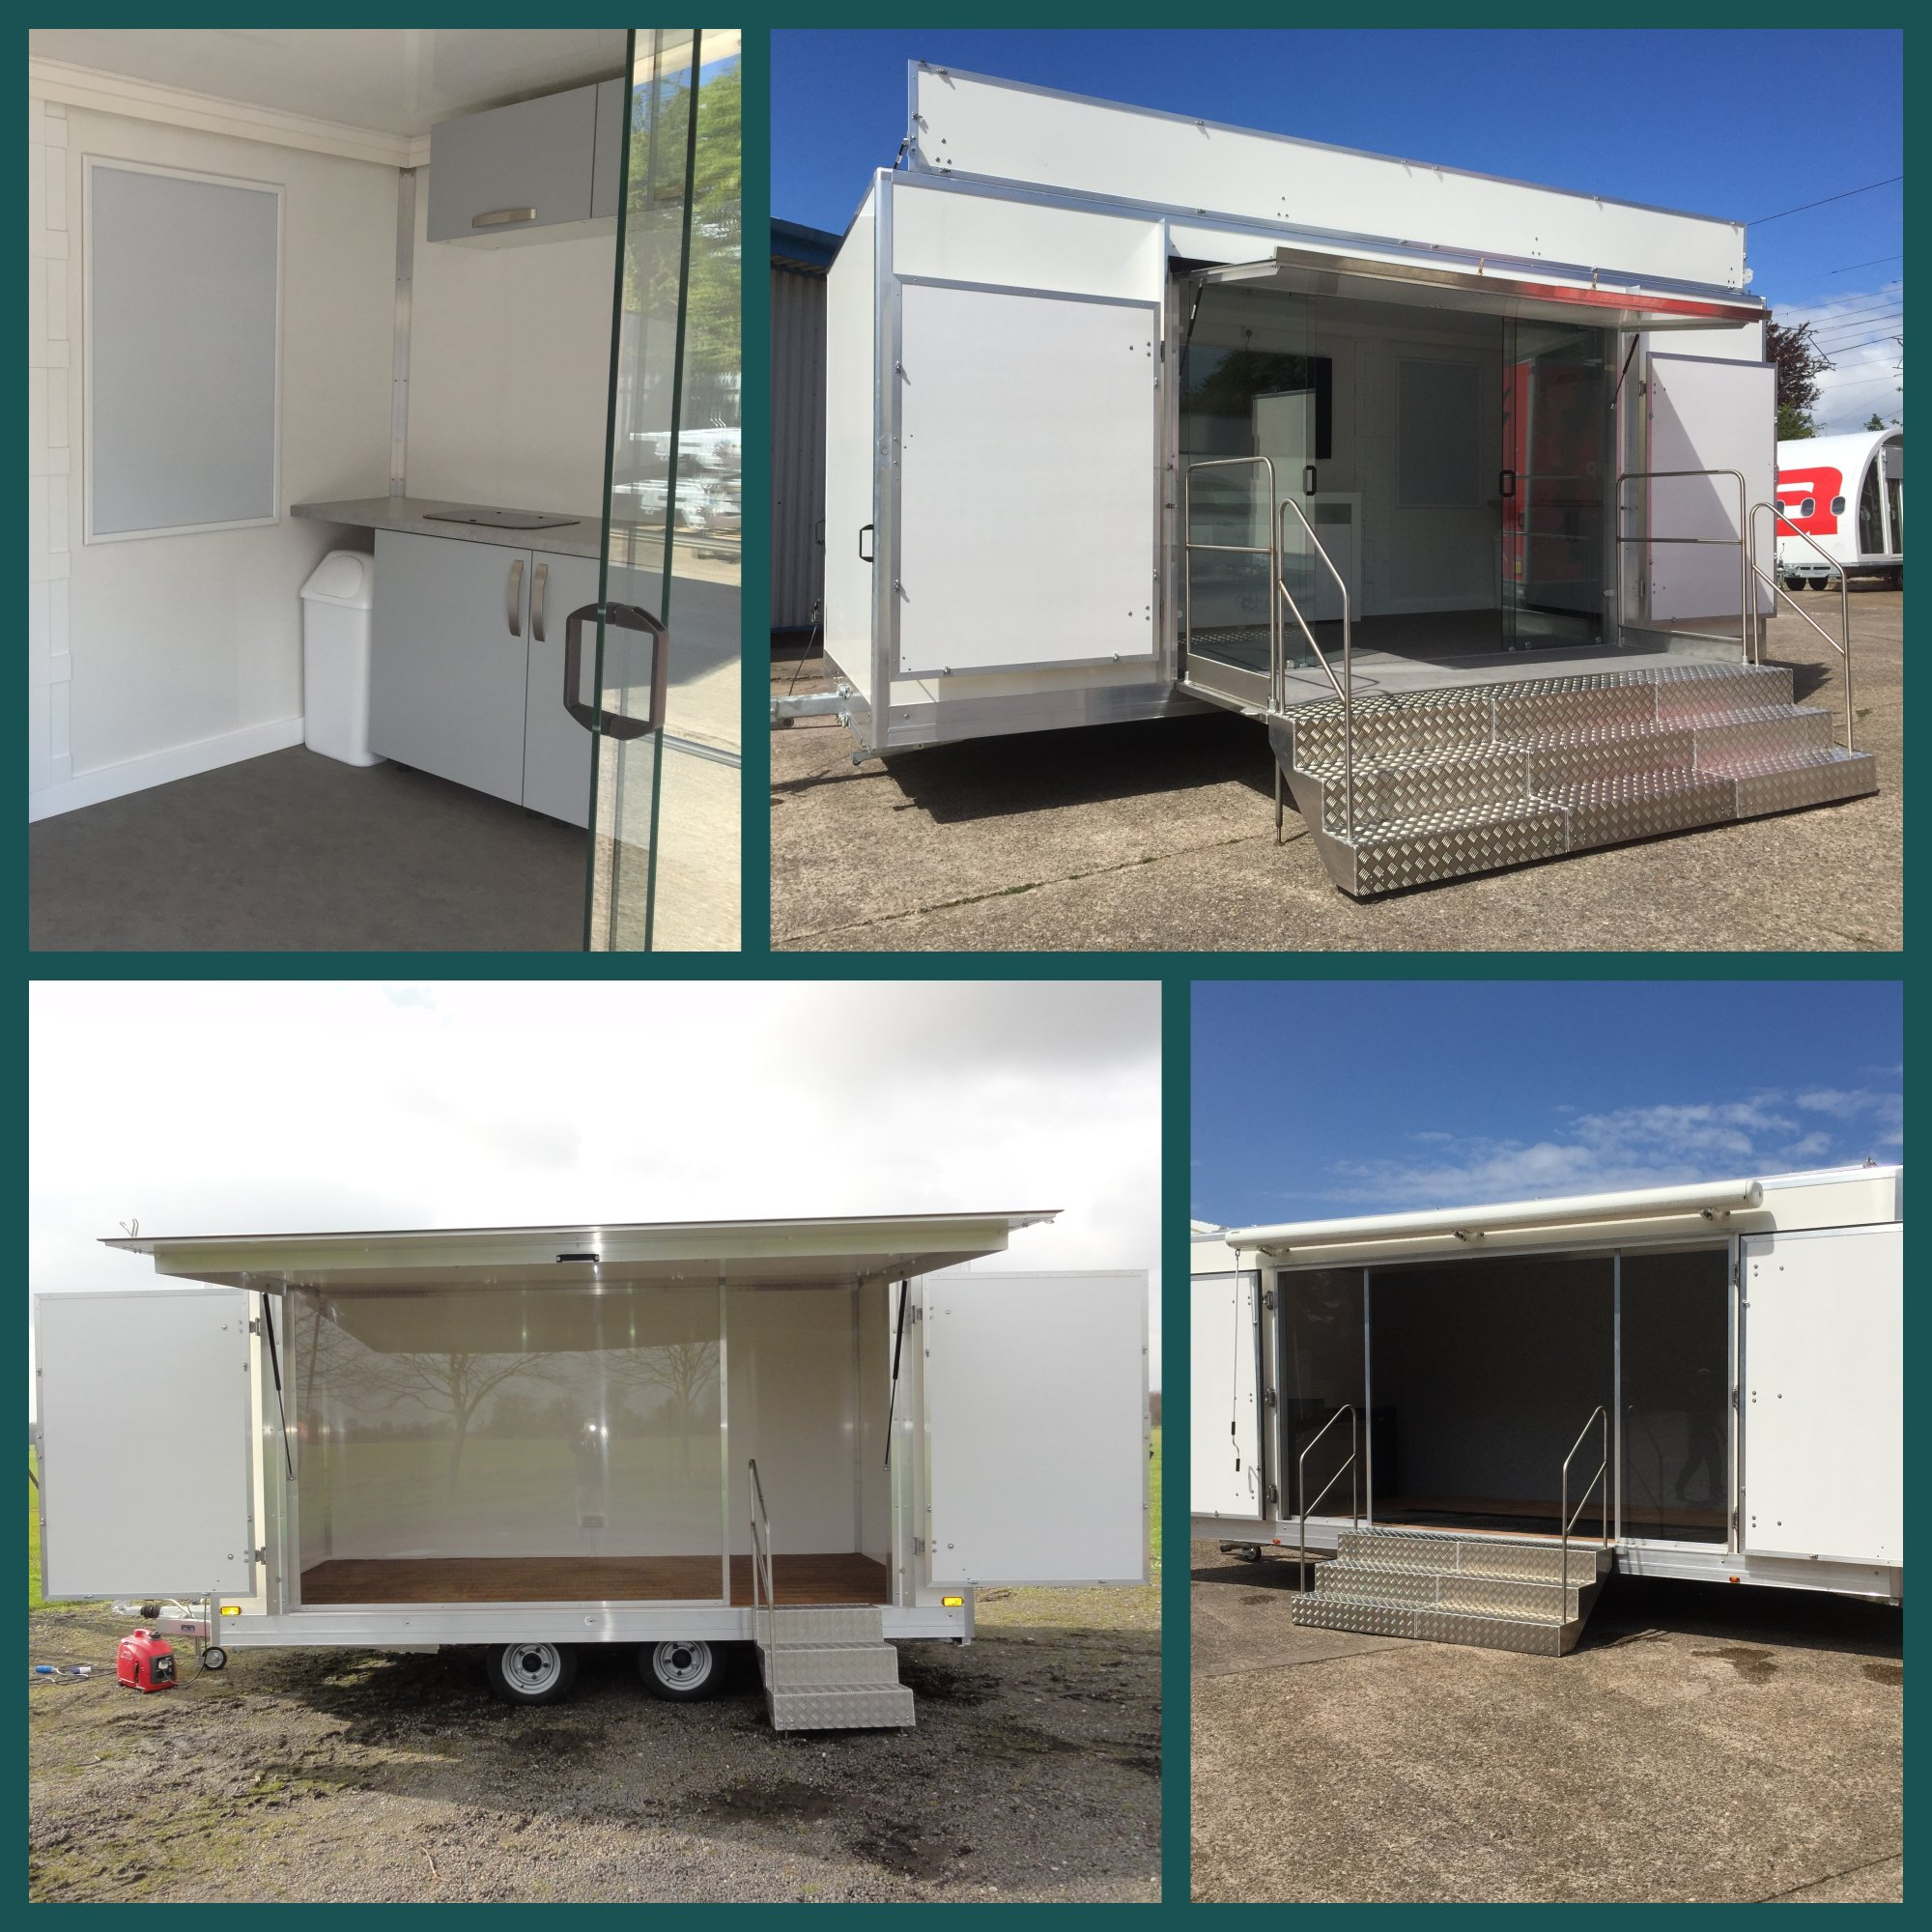 exhibition trailers for sale